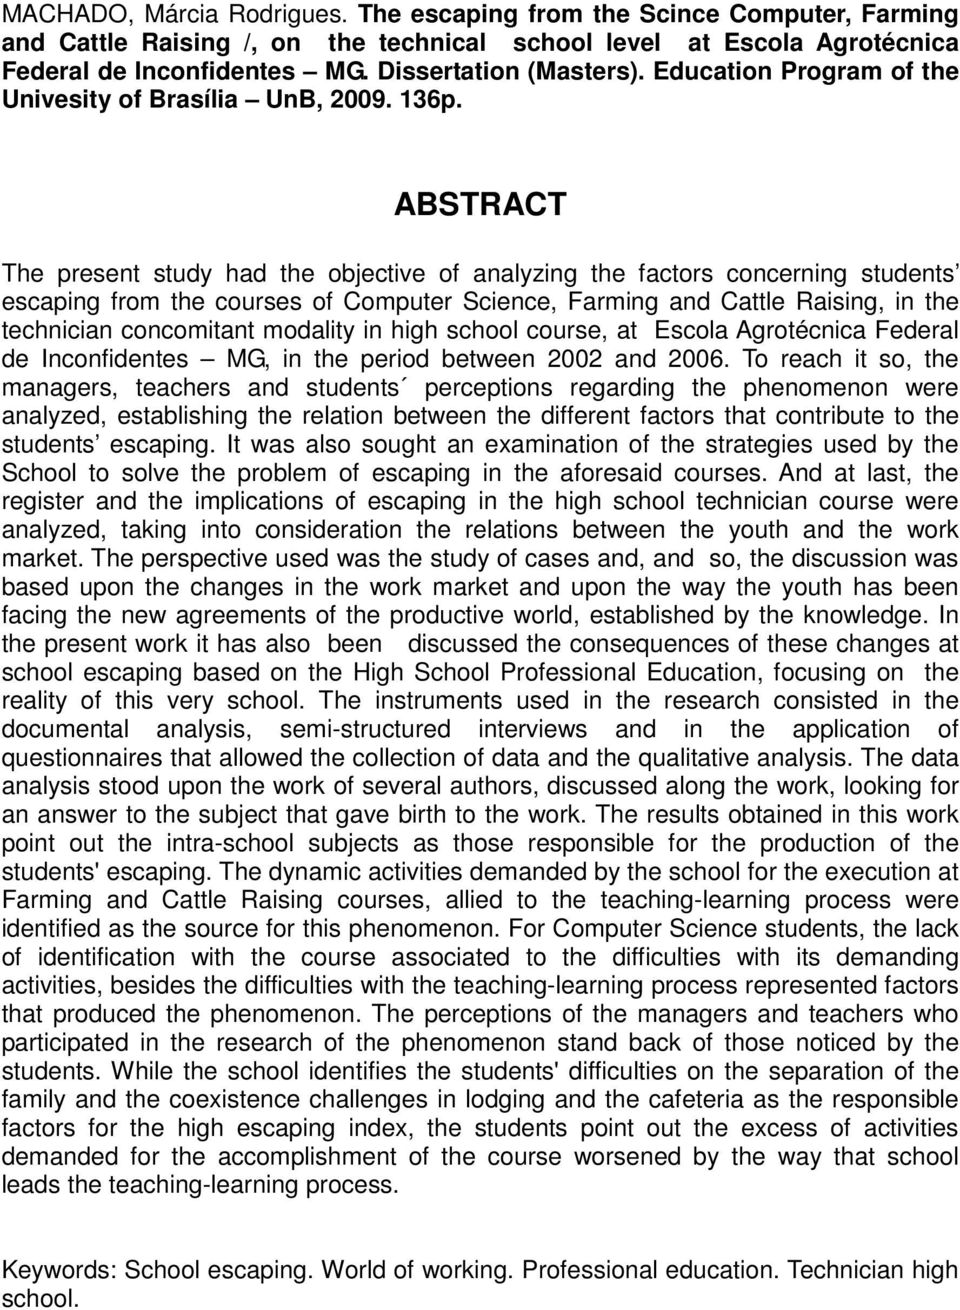 ABSTRACT The present study had the objective of analyzing the factors concerning students escaping from the courses of Computer Science, Farming and Cattle Raising, in the technician concomitant